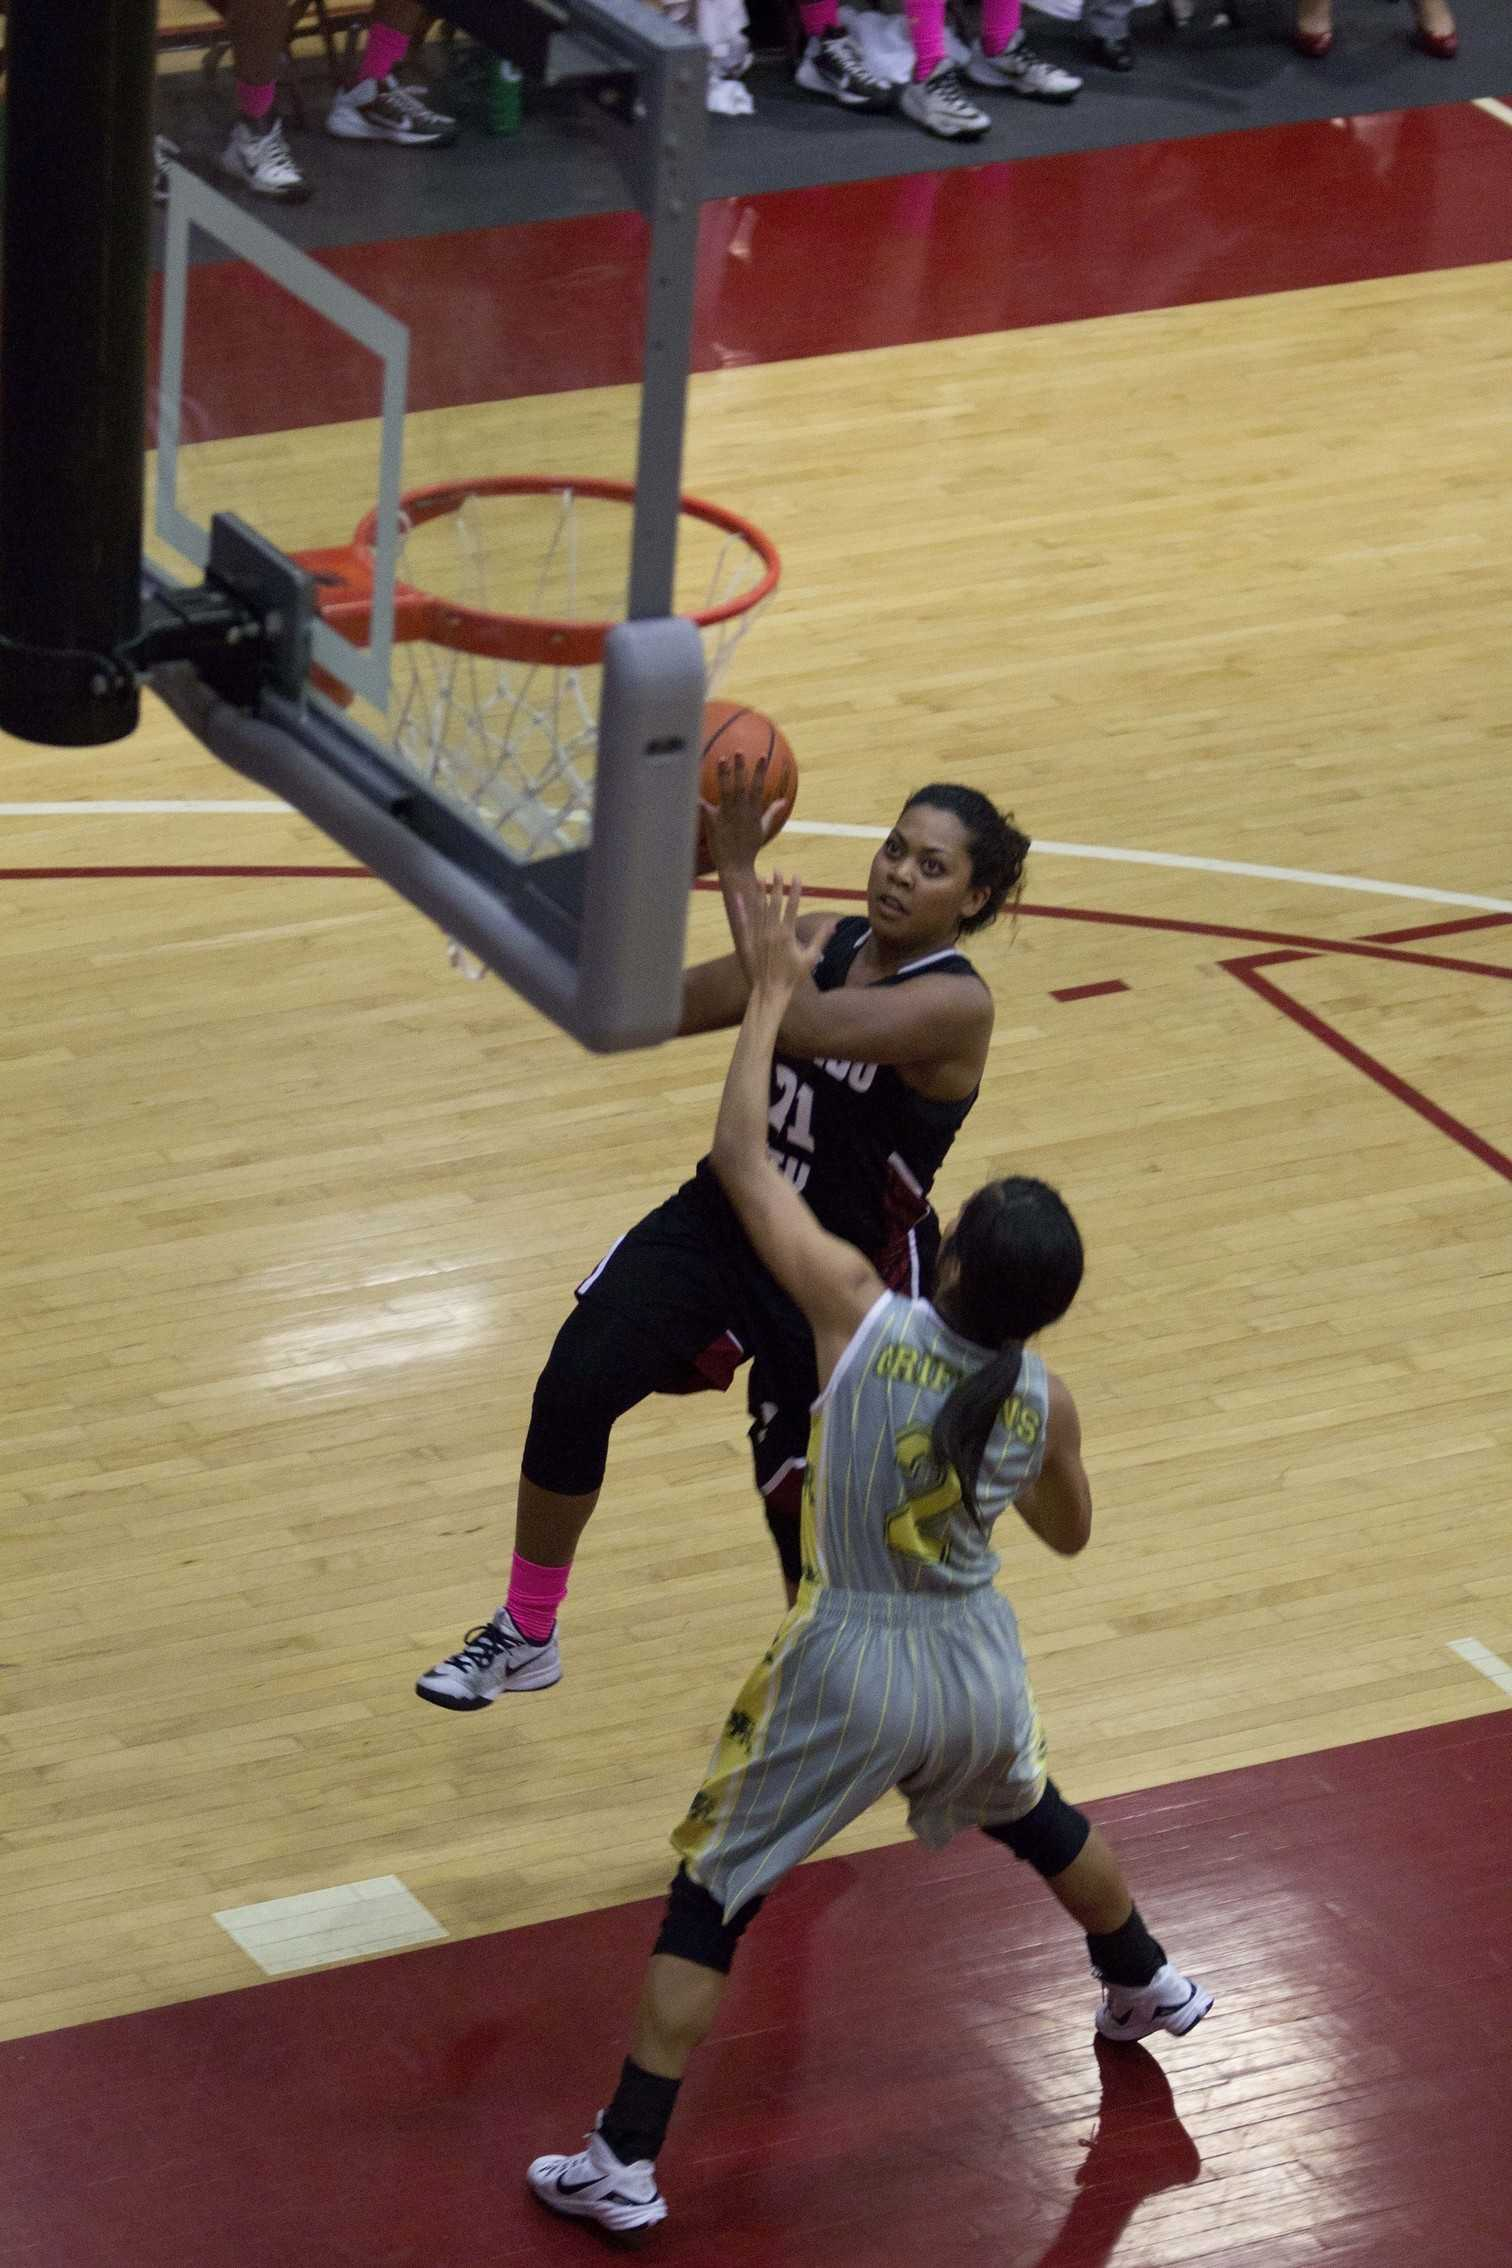 """In the team's last home game of the season, sophomore guard Daniesha Davis goes up for the layup during the second half as the Knights pulled out a 48-41 victory against Grossmont College on Feb. 18 and on """"sophomore night"""" at the Harry West Gym. Photo credit: David Pradel"""